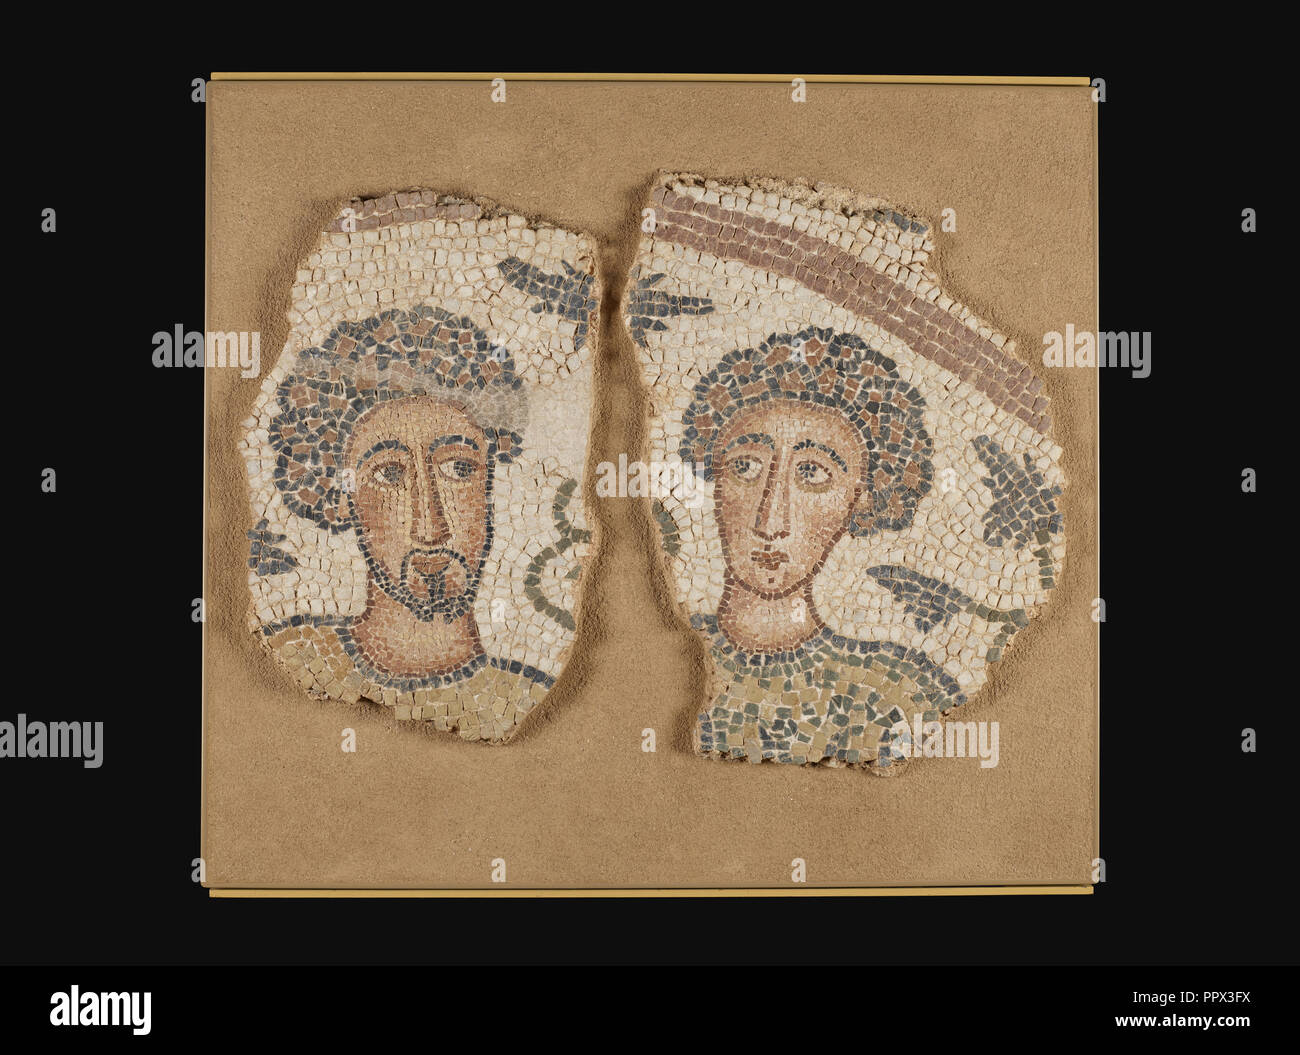 Mosaic Fragments, 2, Eastern Mediterranean, ?, 5th century; Stone and concrete; 48 × 68 cm, 18 7,8 × 26 3,4 in - Stock Image